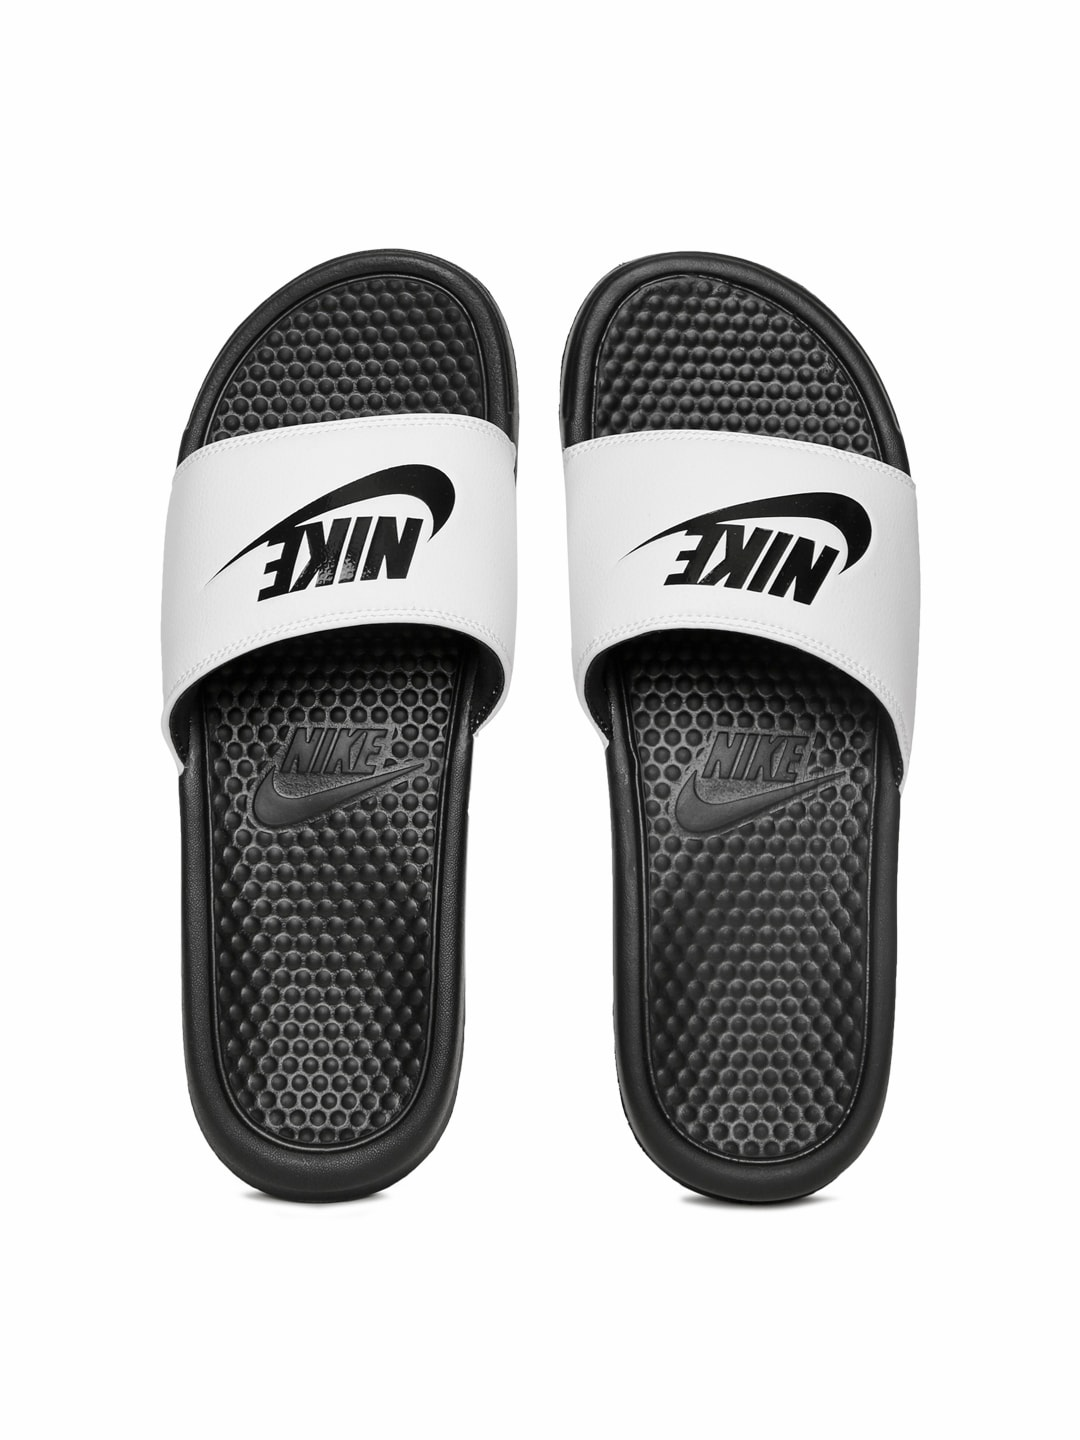 5a155cfa16c4 Nike Flip-Flops - Buy Nike Flip-Flops for Men Women Online